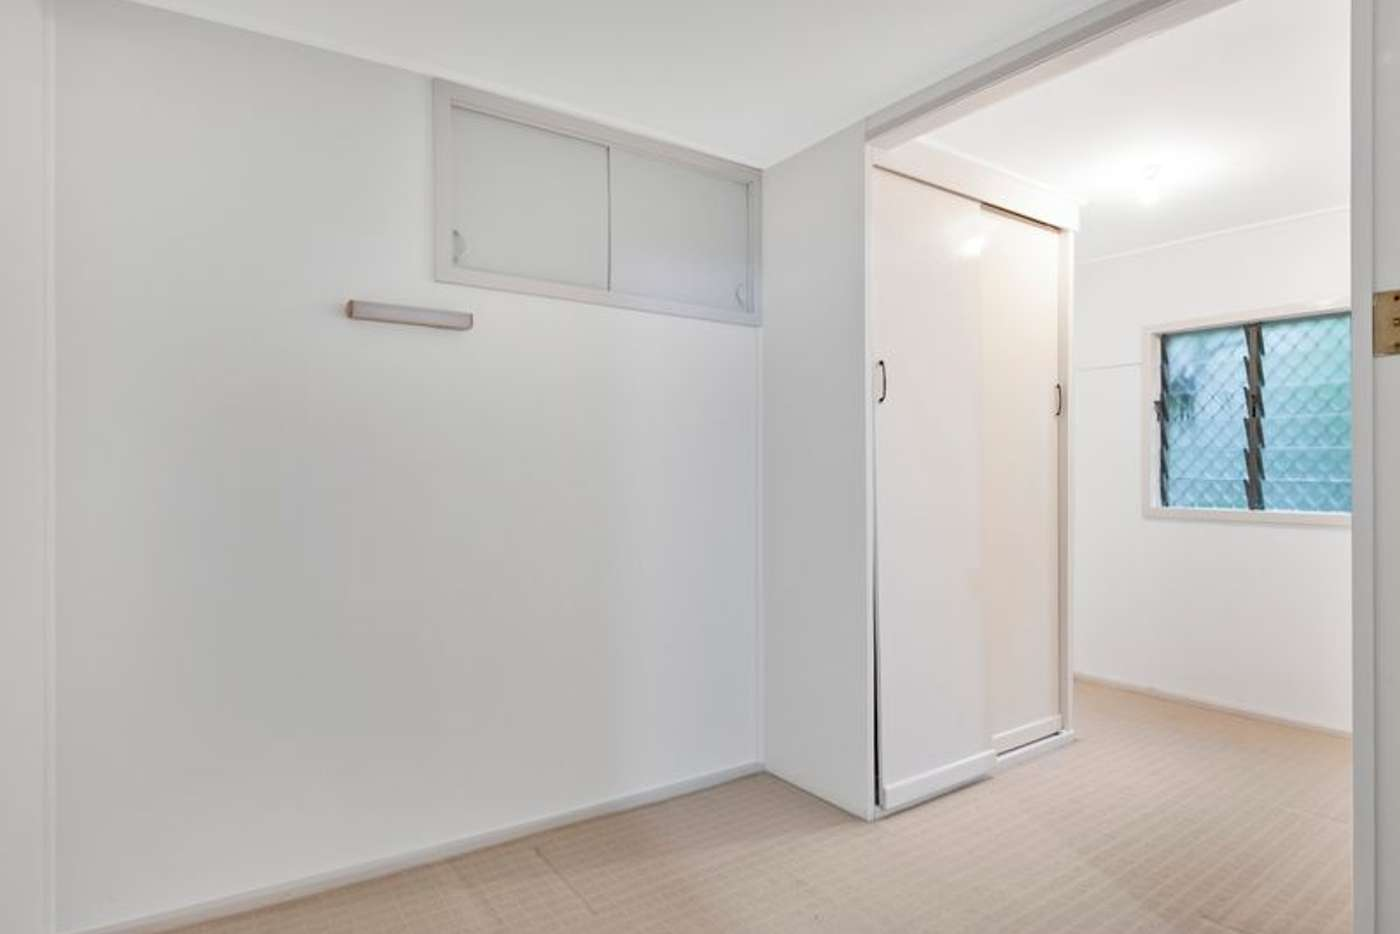 Seventh view of Homely flat listing, 4A Wairoo Street, Burleigh Heads QLD 4220